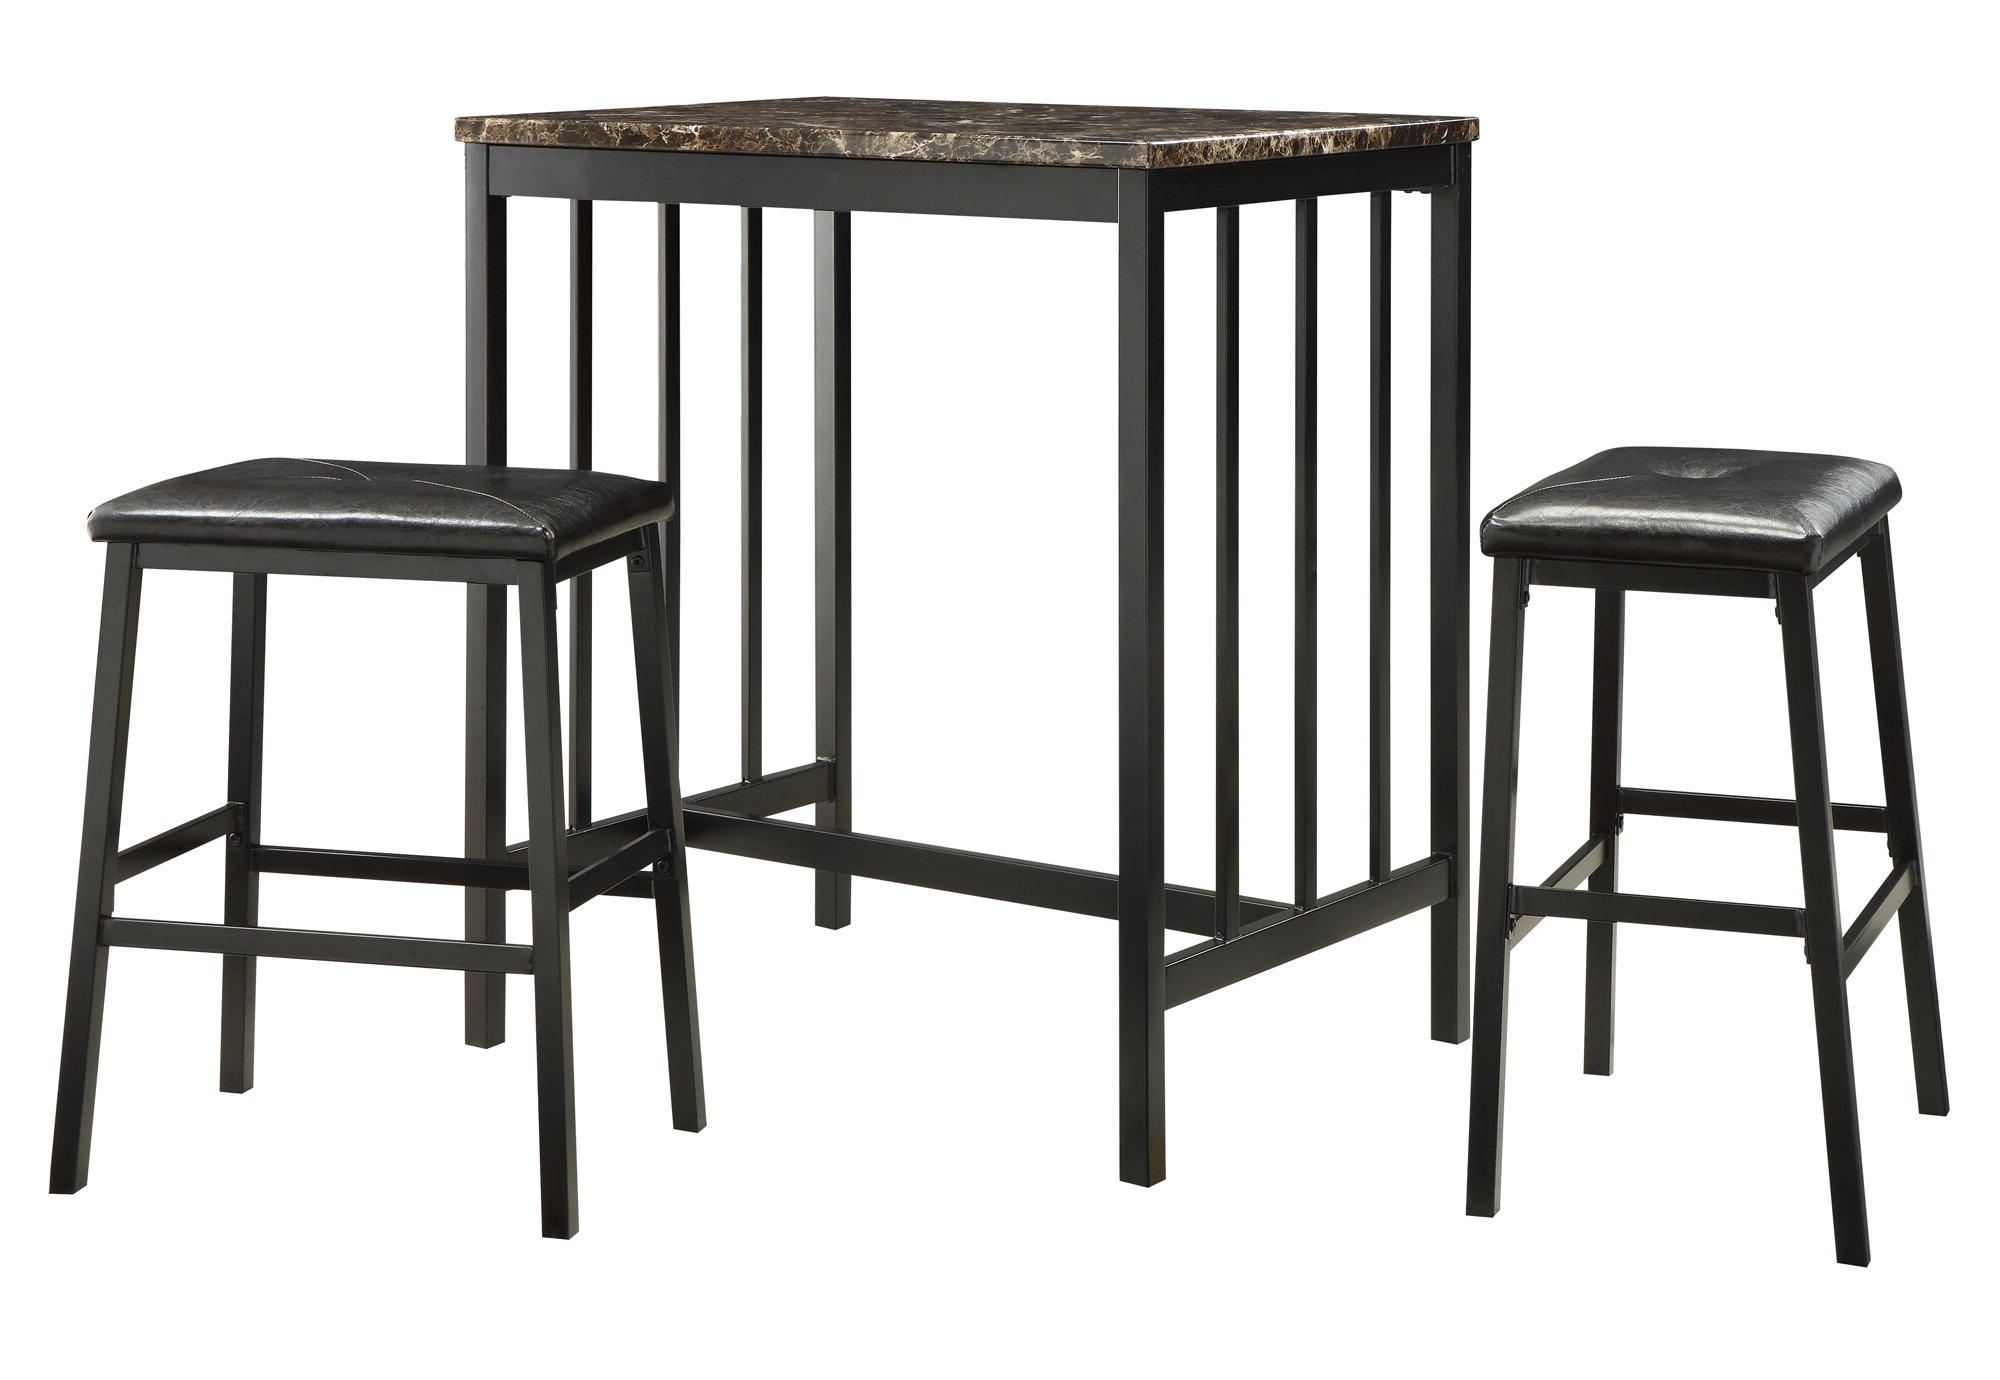 Wayfair With Current Askern 3 Piece Counter Height Dining Sets (Set Of 3) (View 19 of 25)